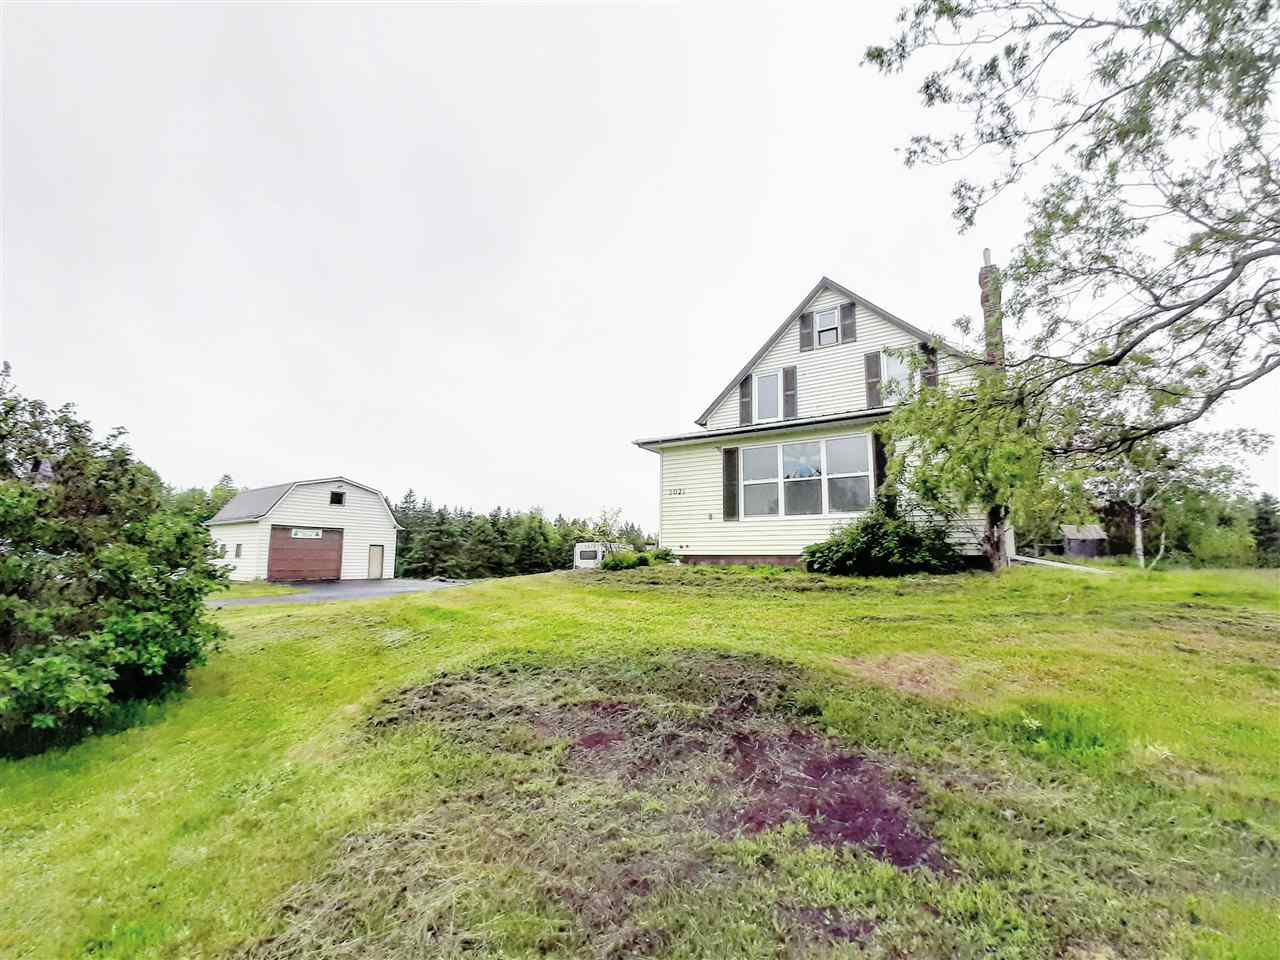 Main Photo: 3021 Aylesford Road in Lake Paul: 404-Kings County Residential for sale (Annapolis Valley)  : MLS®# 201924204